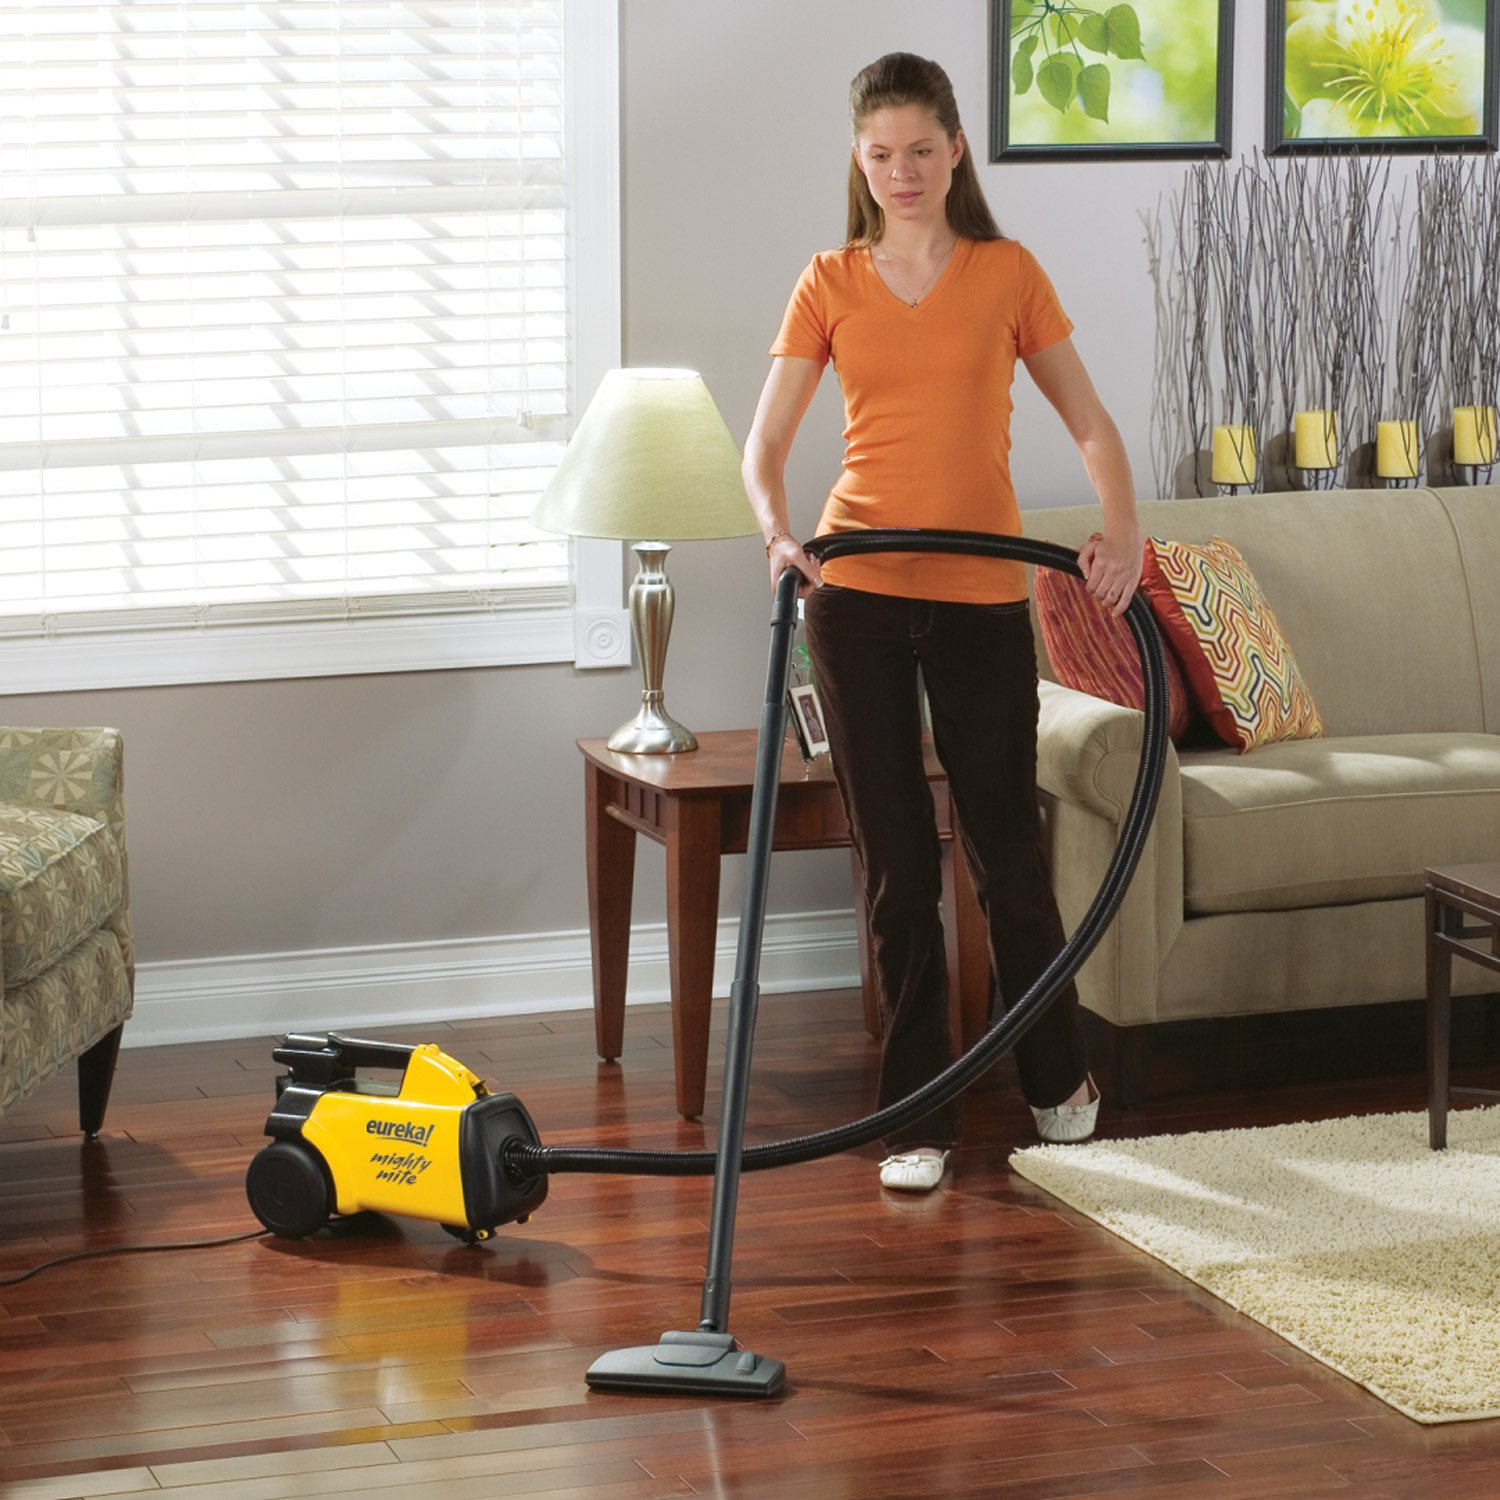 Kitchen Floor Vacuum Amazoncom Eureka Mighty Mite Canister Vacuum 3670g Corded